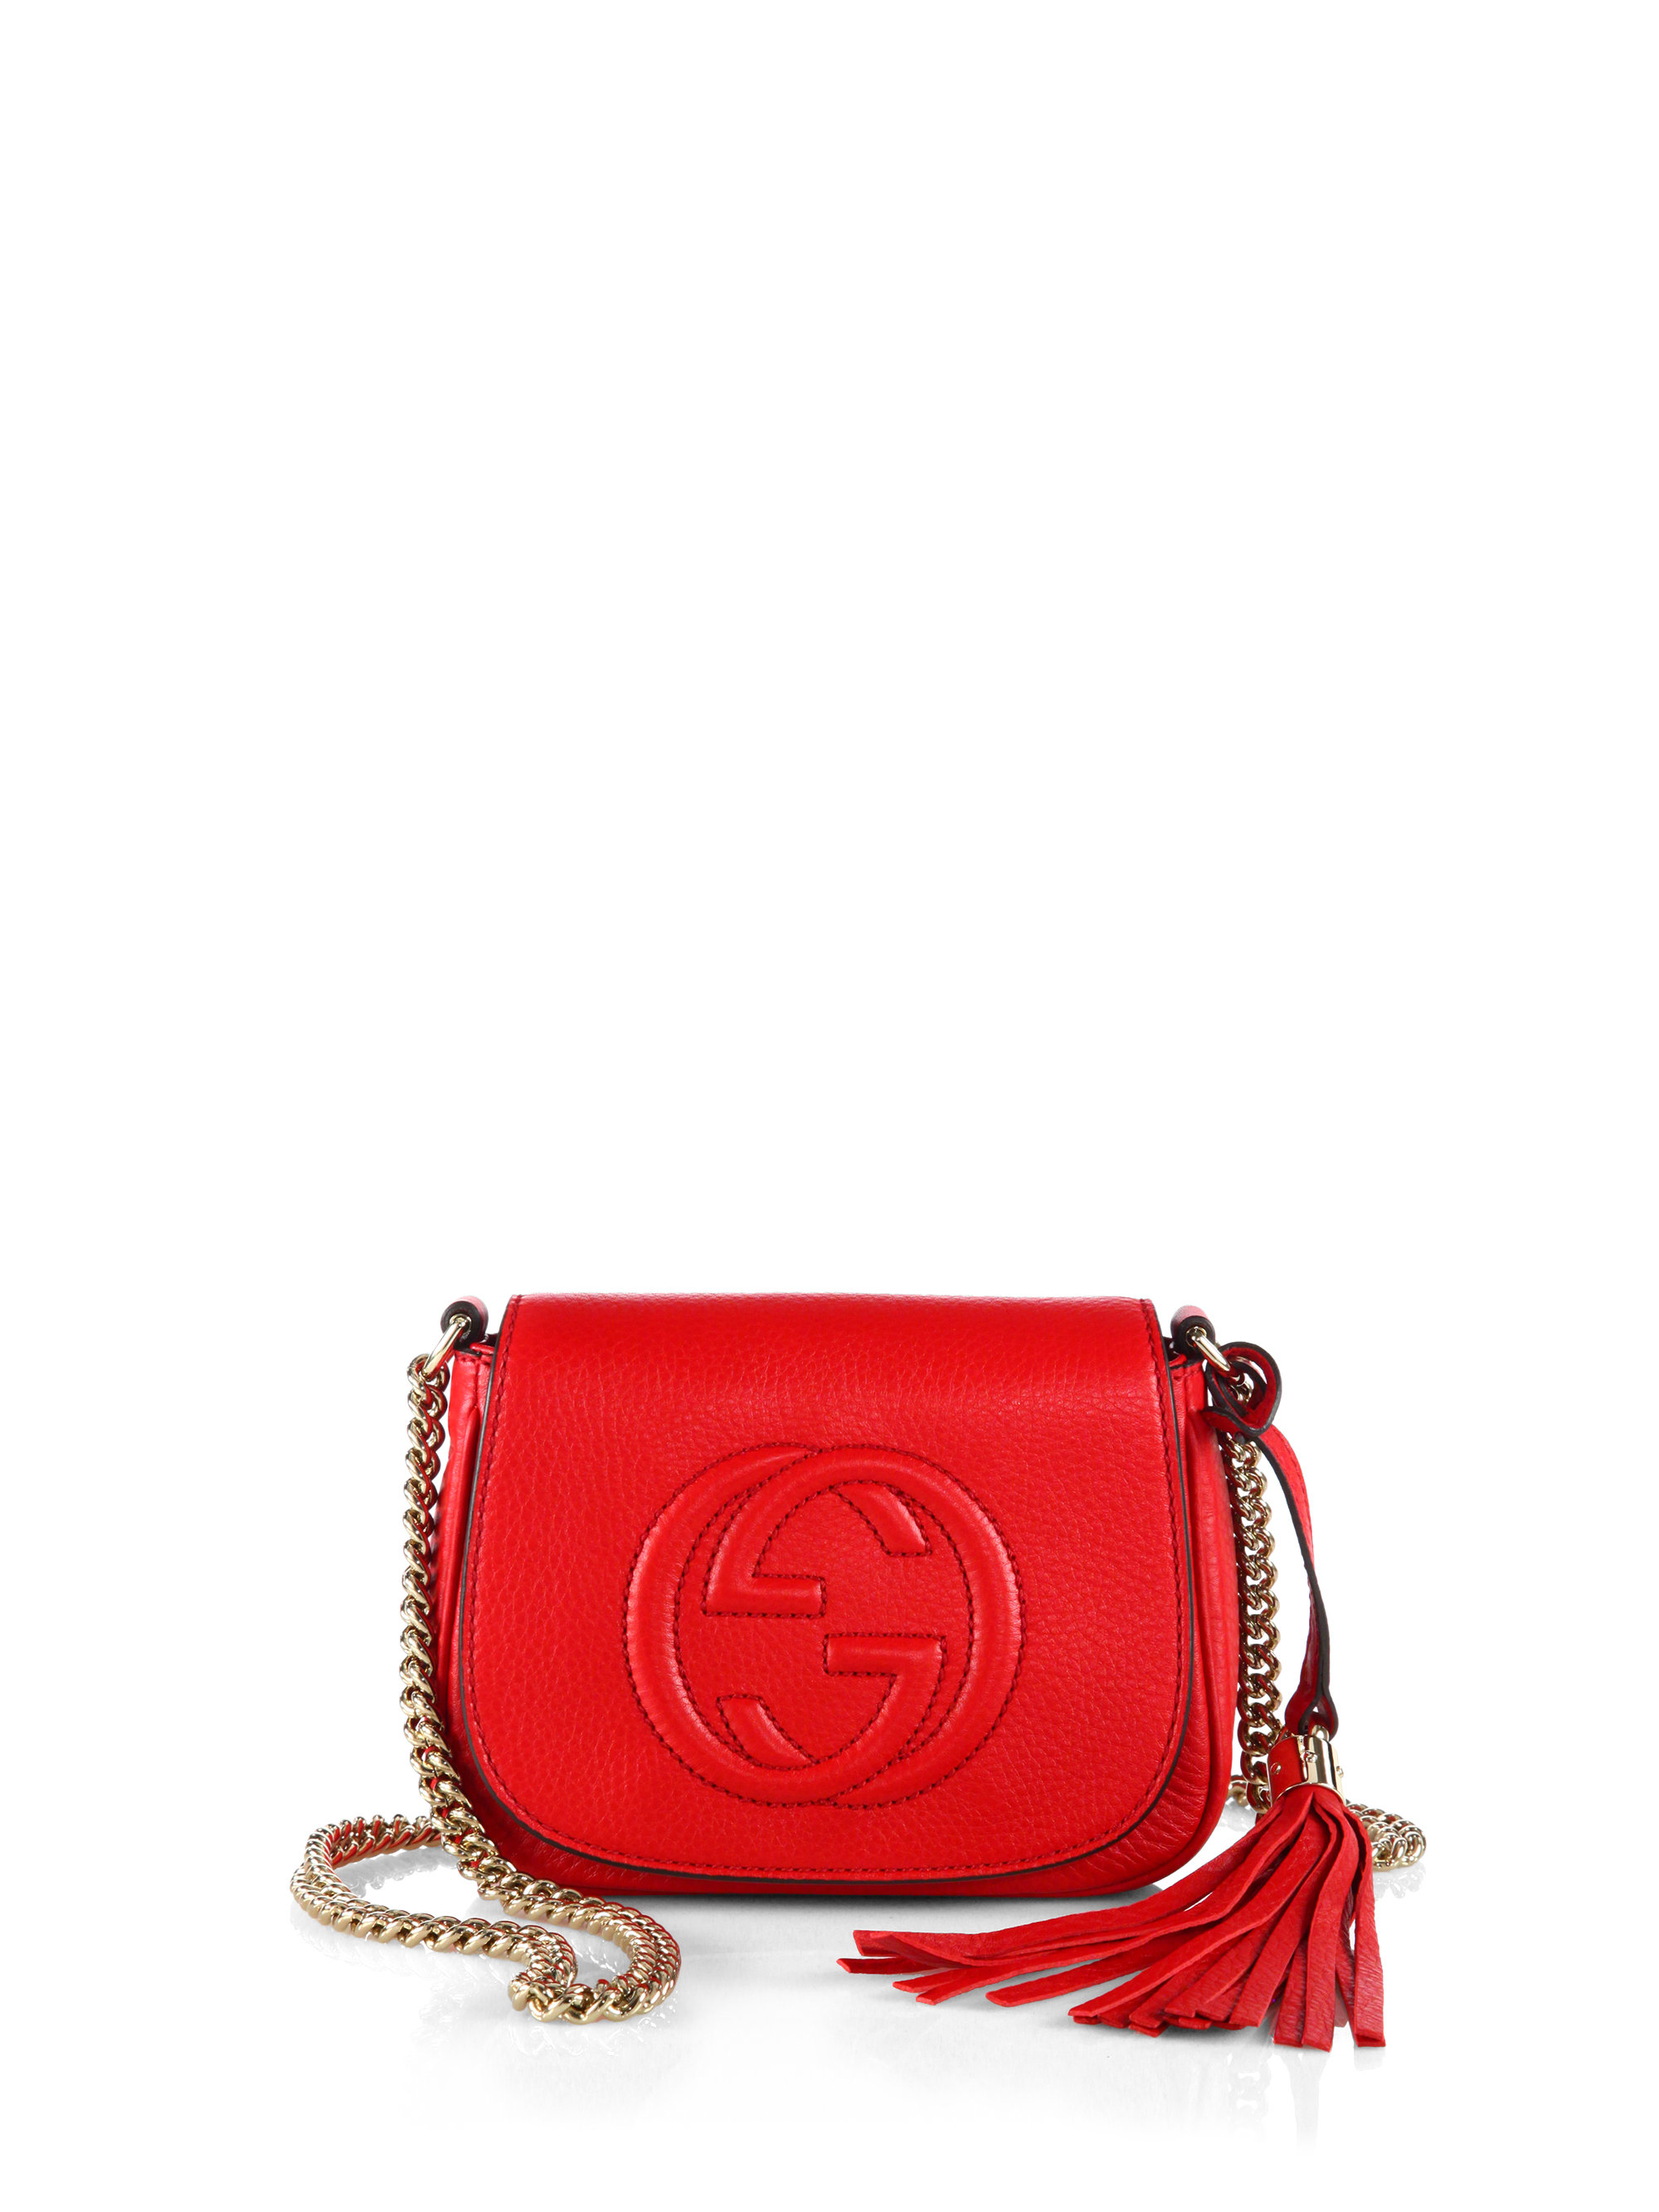 f9467d16716b Lyst - Gucci Soho Leather Chain Shoulder Bag in Red